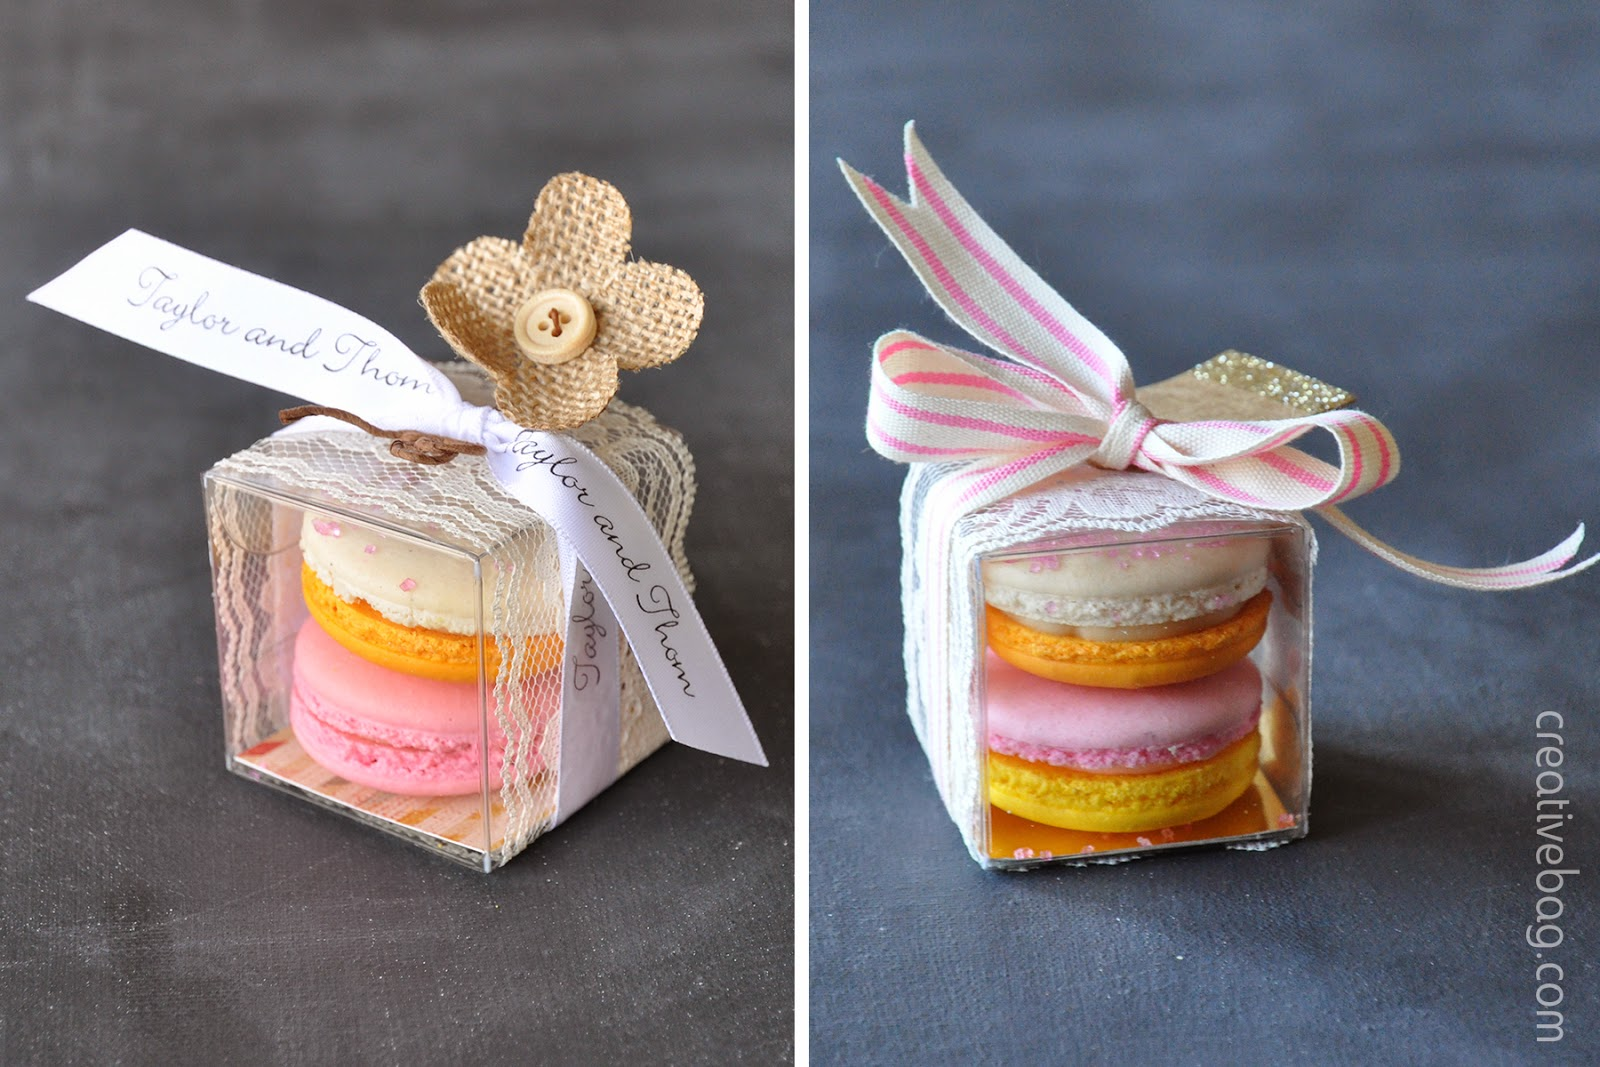 Packaging For Macarons The creative bag blog macaron favor packaging inspiration using macaron packaging from creativebag macarons from morococholate sisterspd